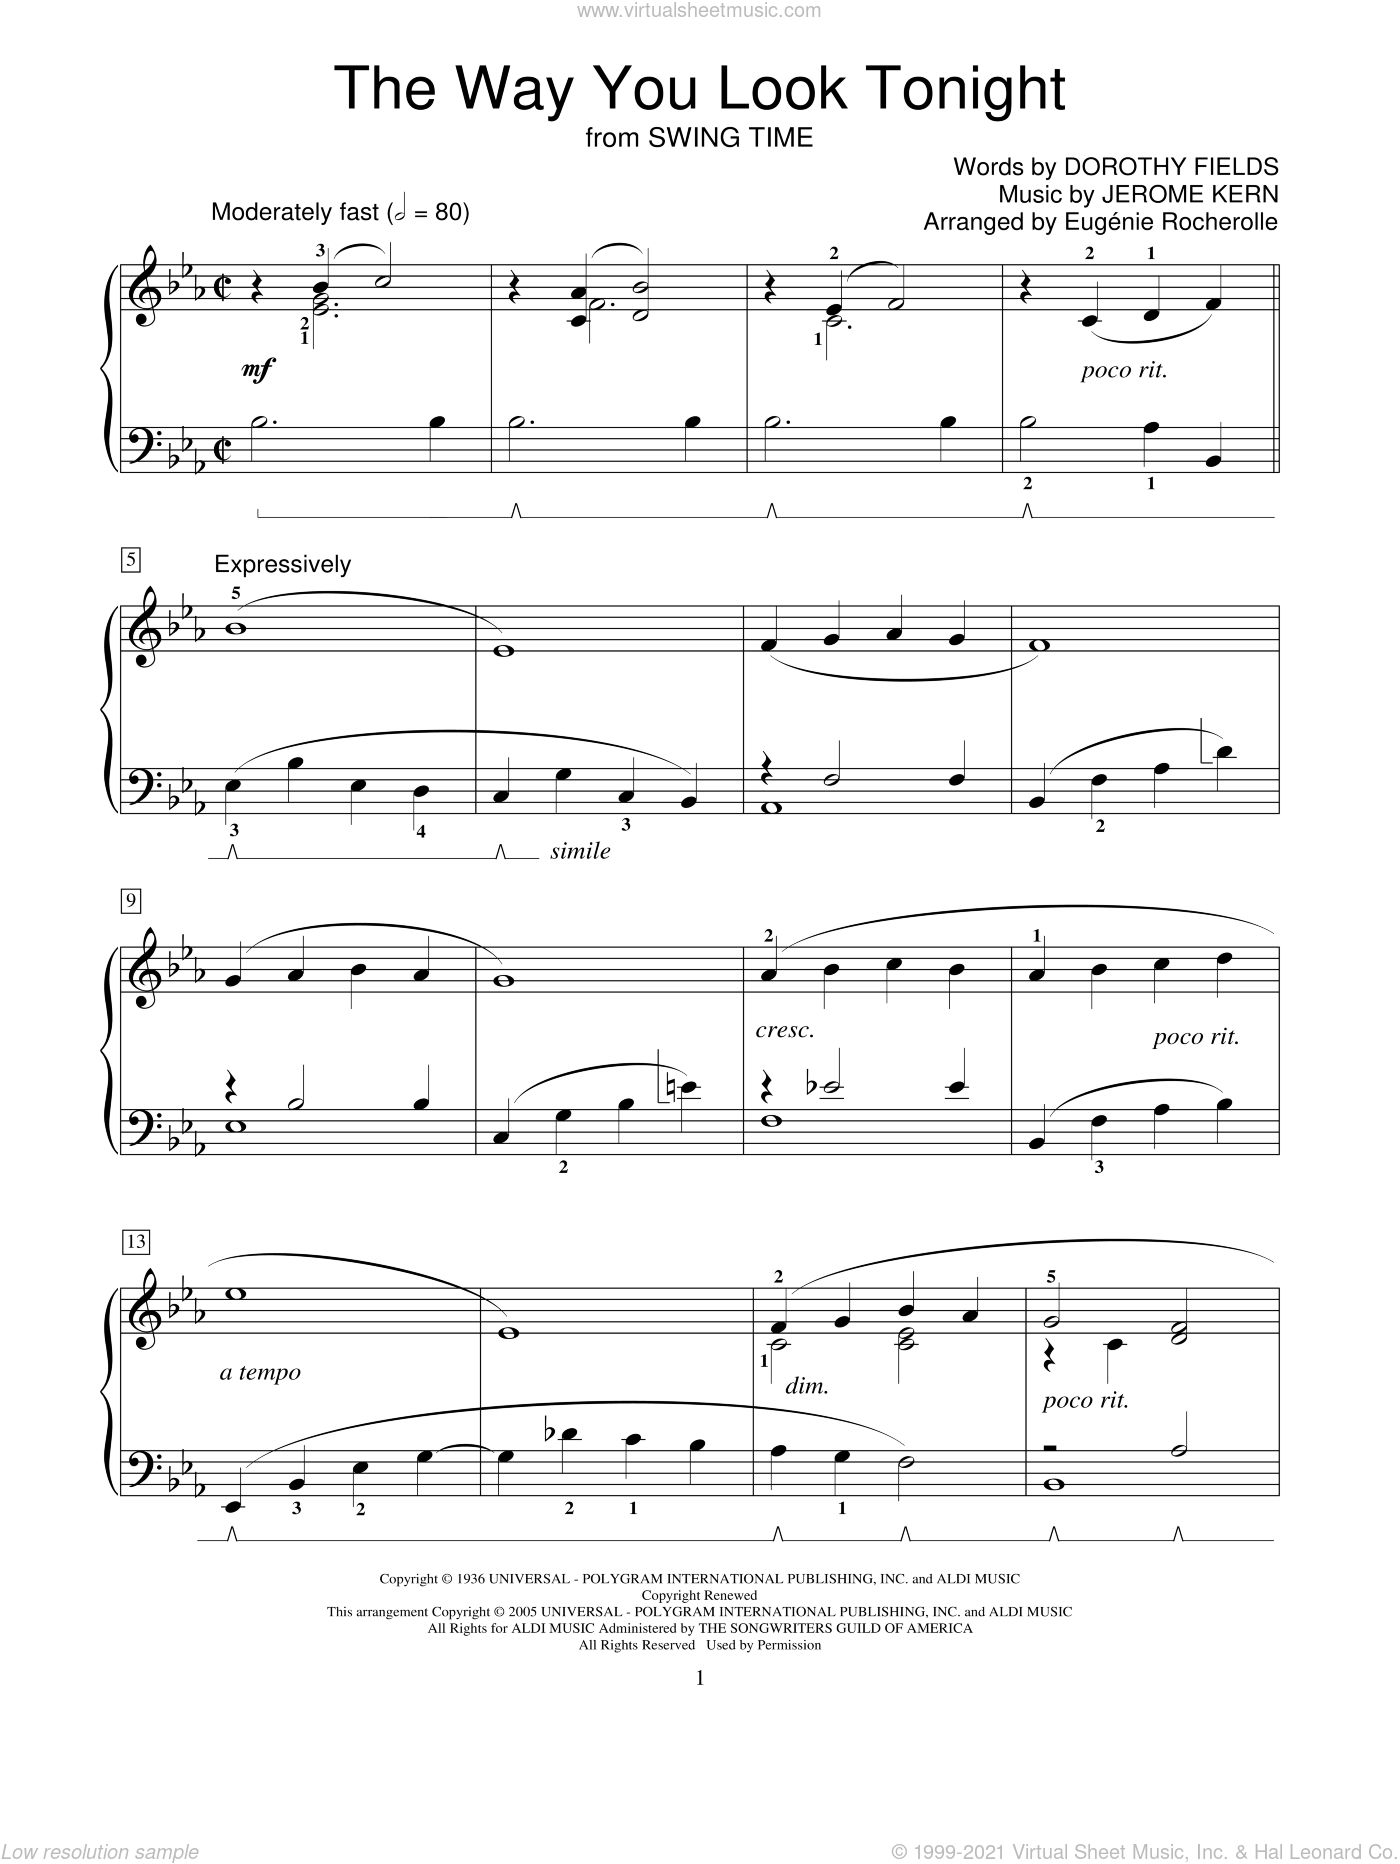 The Way You Look Tonight sheet music for piano solo (elementary) by Dorothy Fields